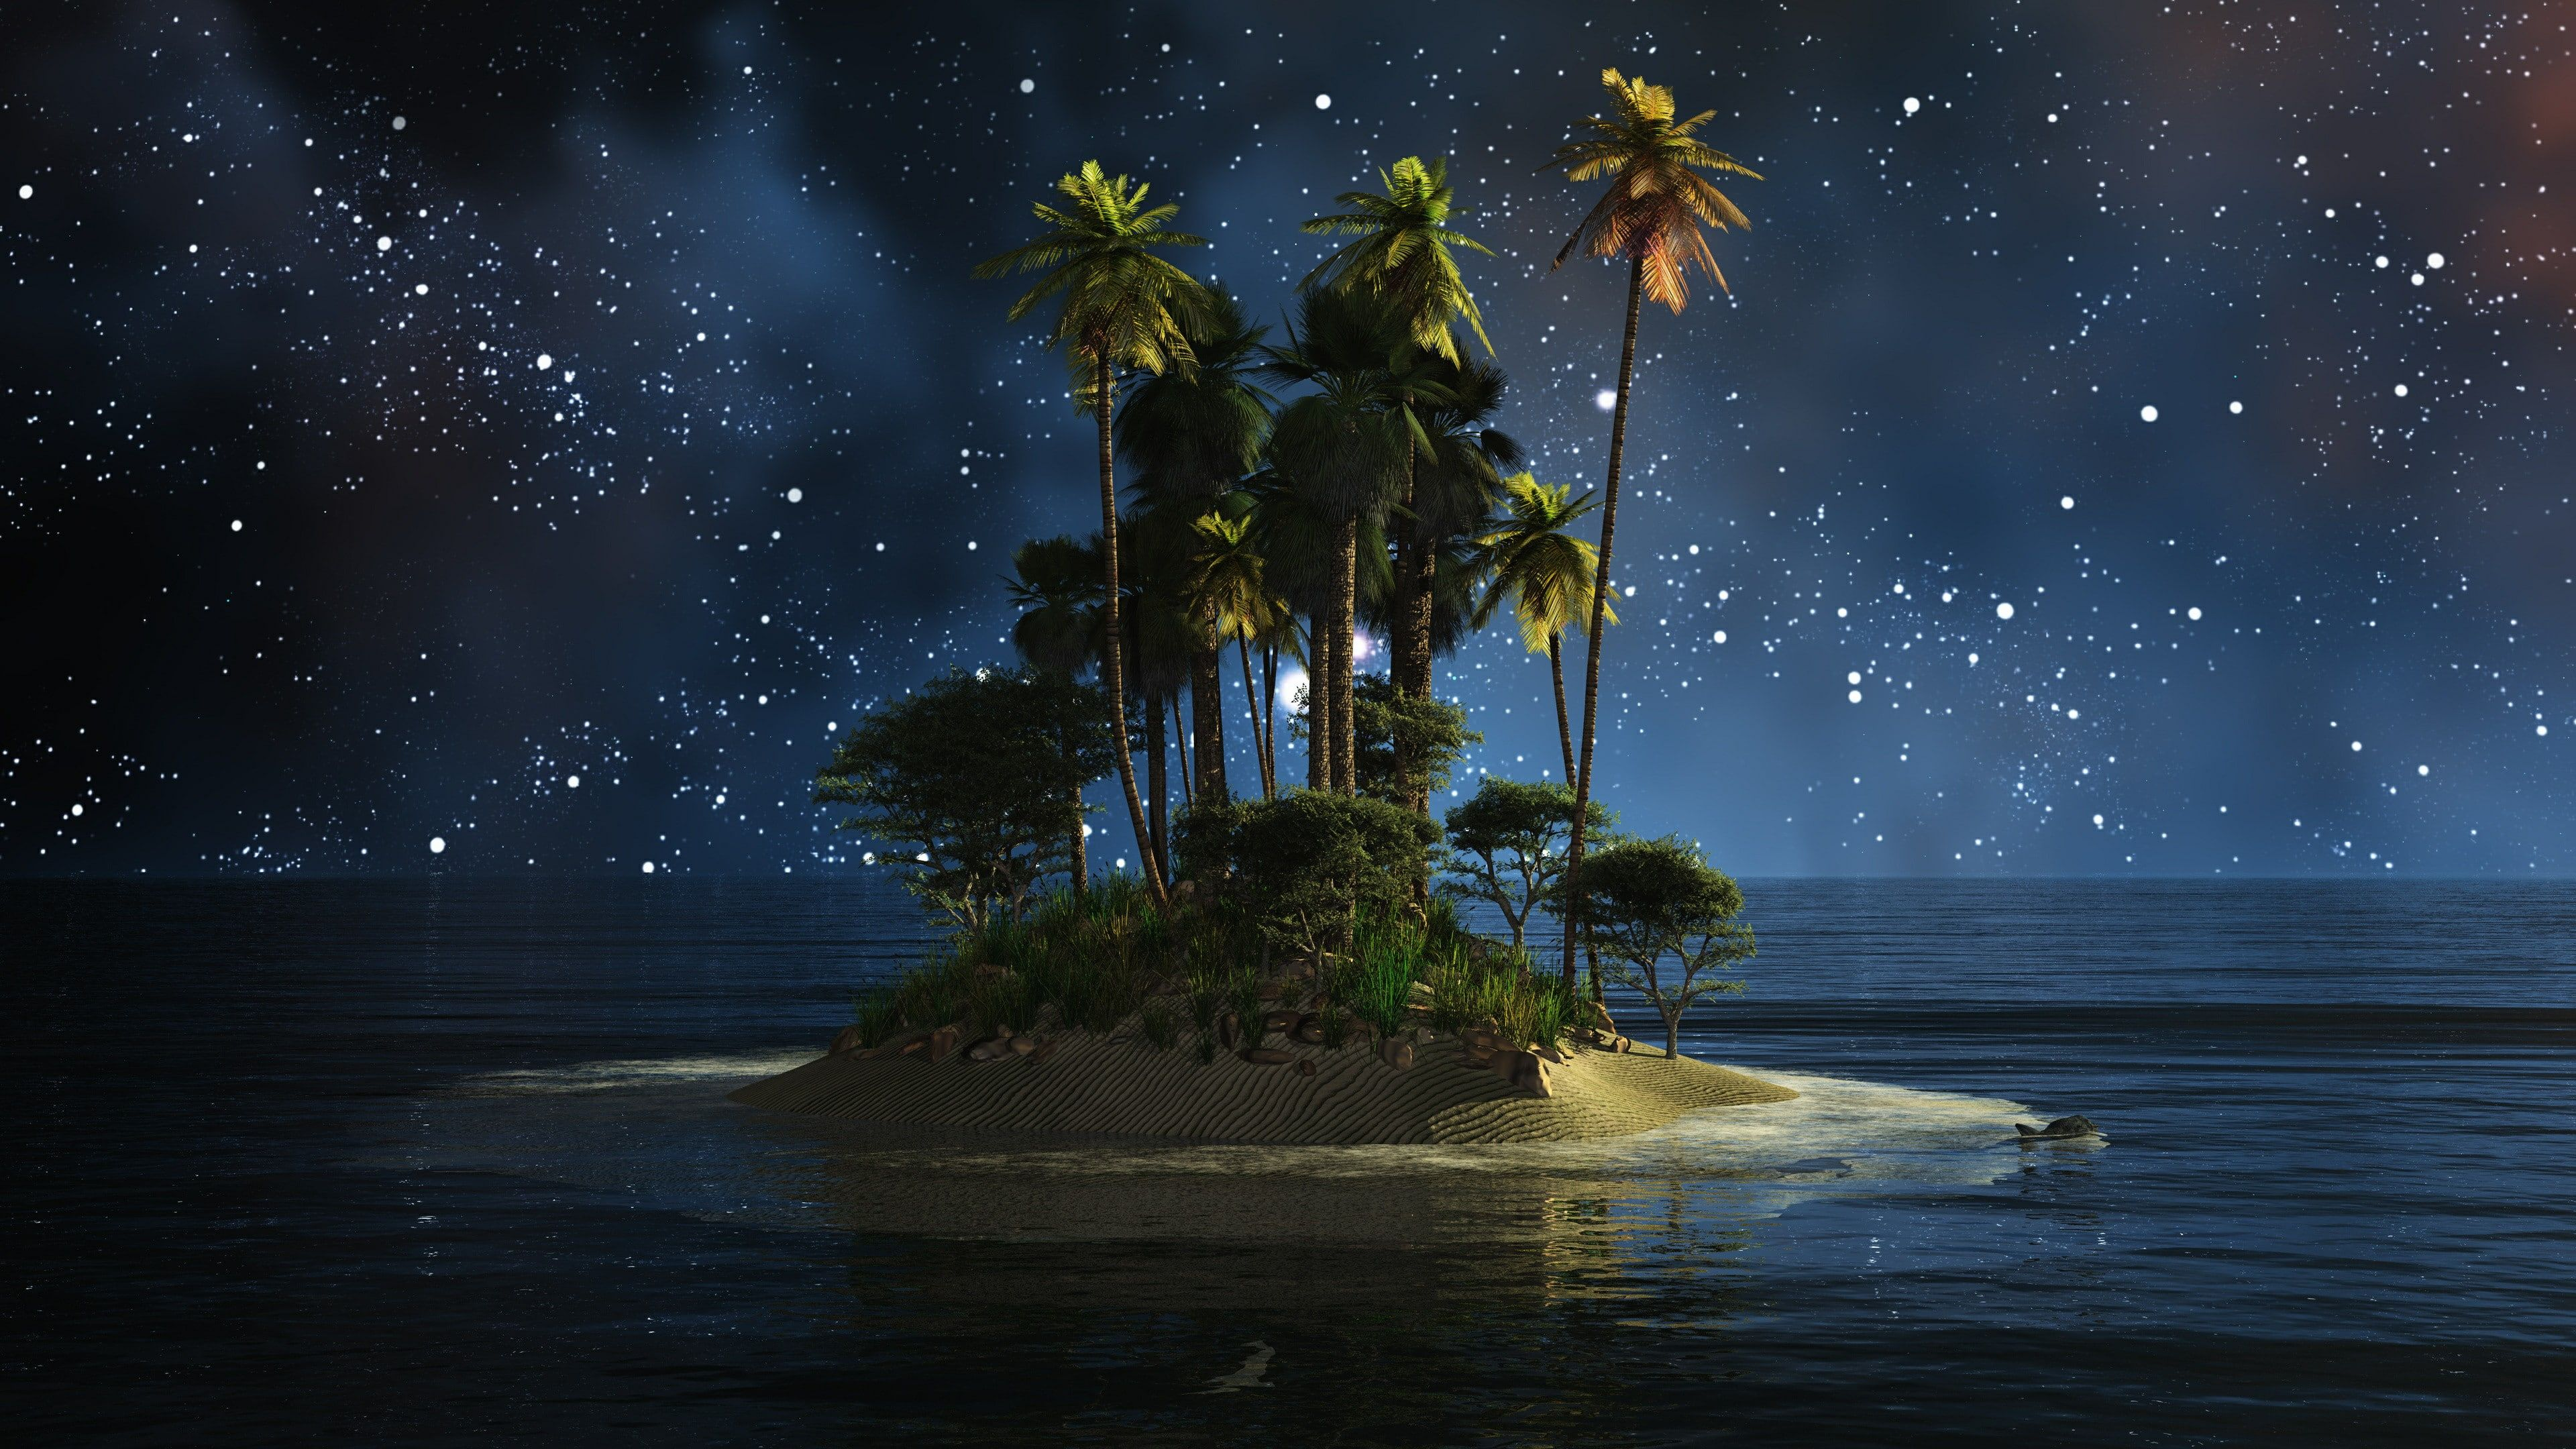 nature water sky atmosphere darkness island night